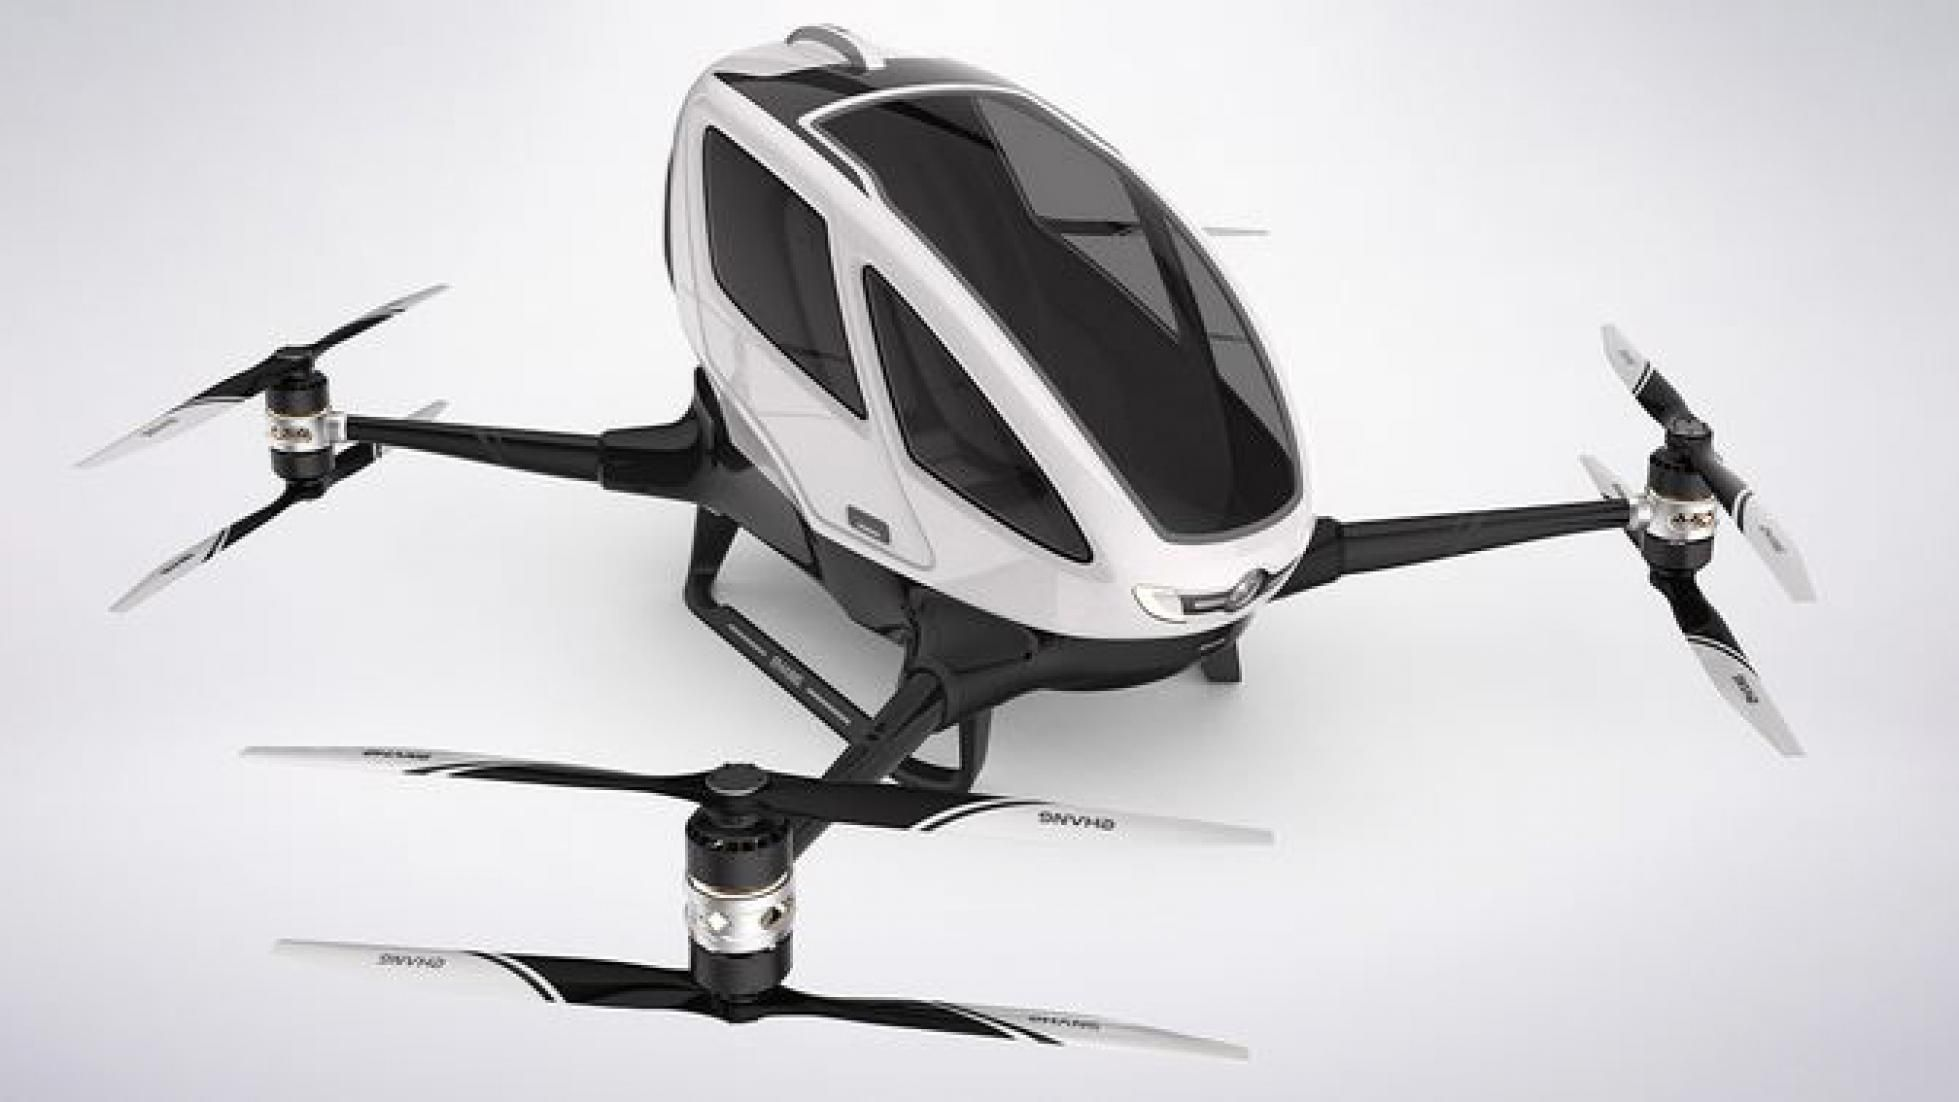 Introducing the world's first passenger drone Drone news